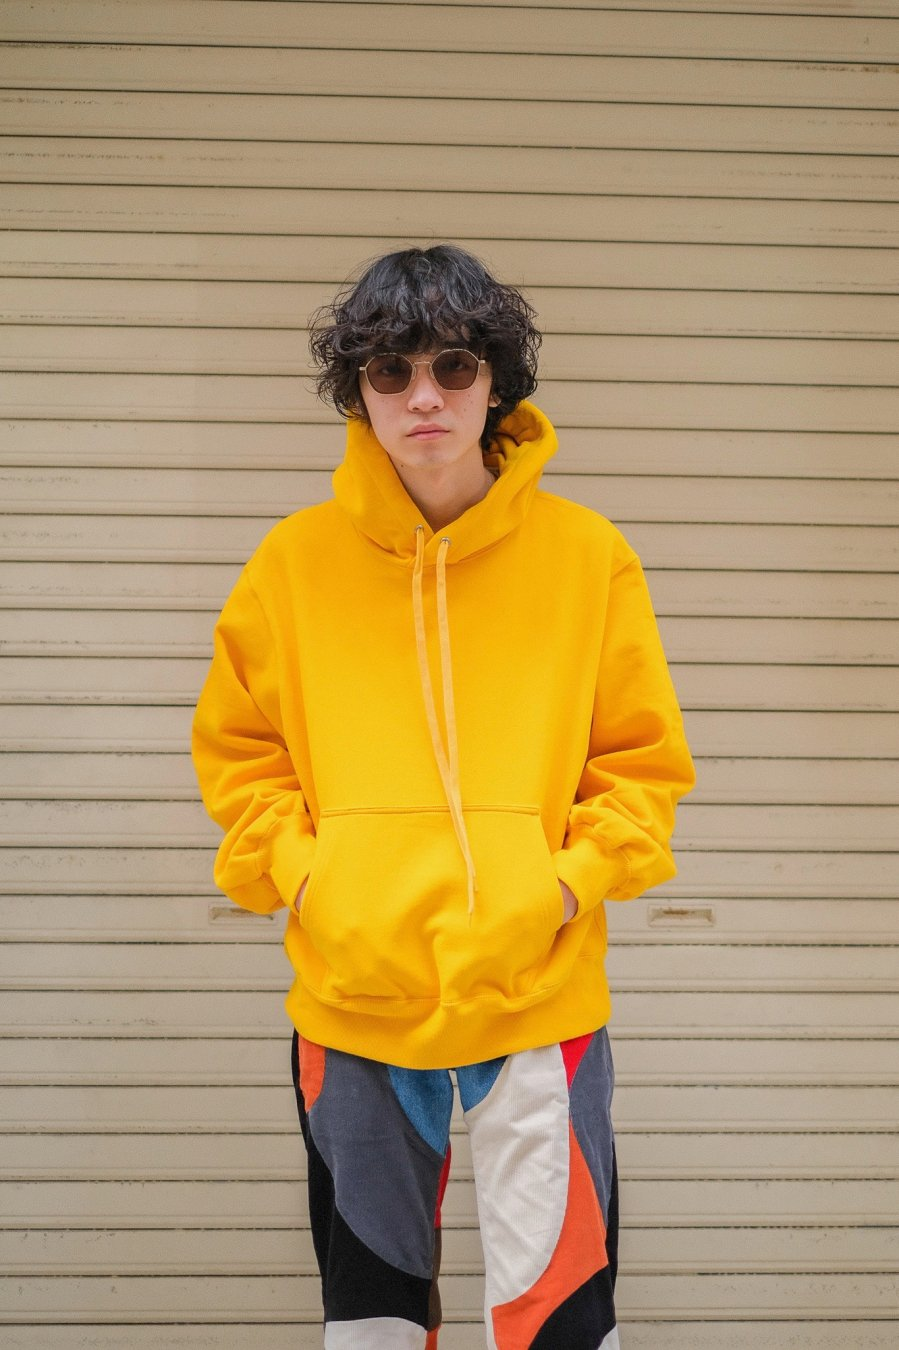 JOHN MASON SMITH  PULLOVER HOODIE(YELLOW)<img class='new_mark_img2' src='https://img.shop-pro.jp/img/new/icons15.gif' style='border:none;display:inline;margin:0px;padding:0px;width:auto;' />